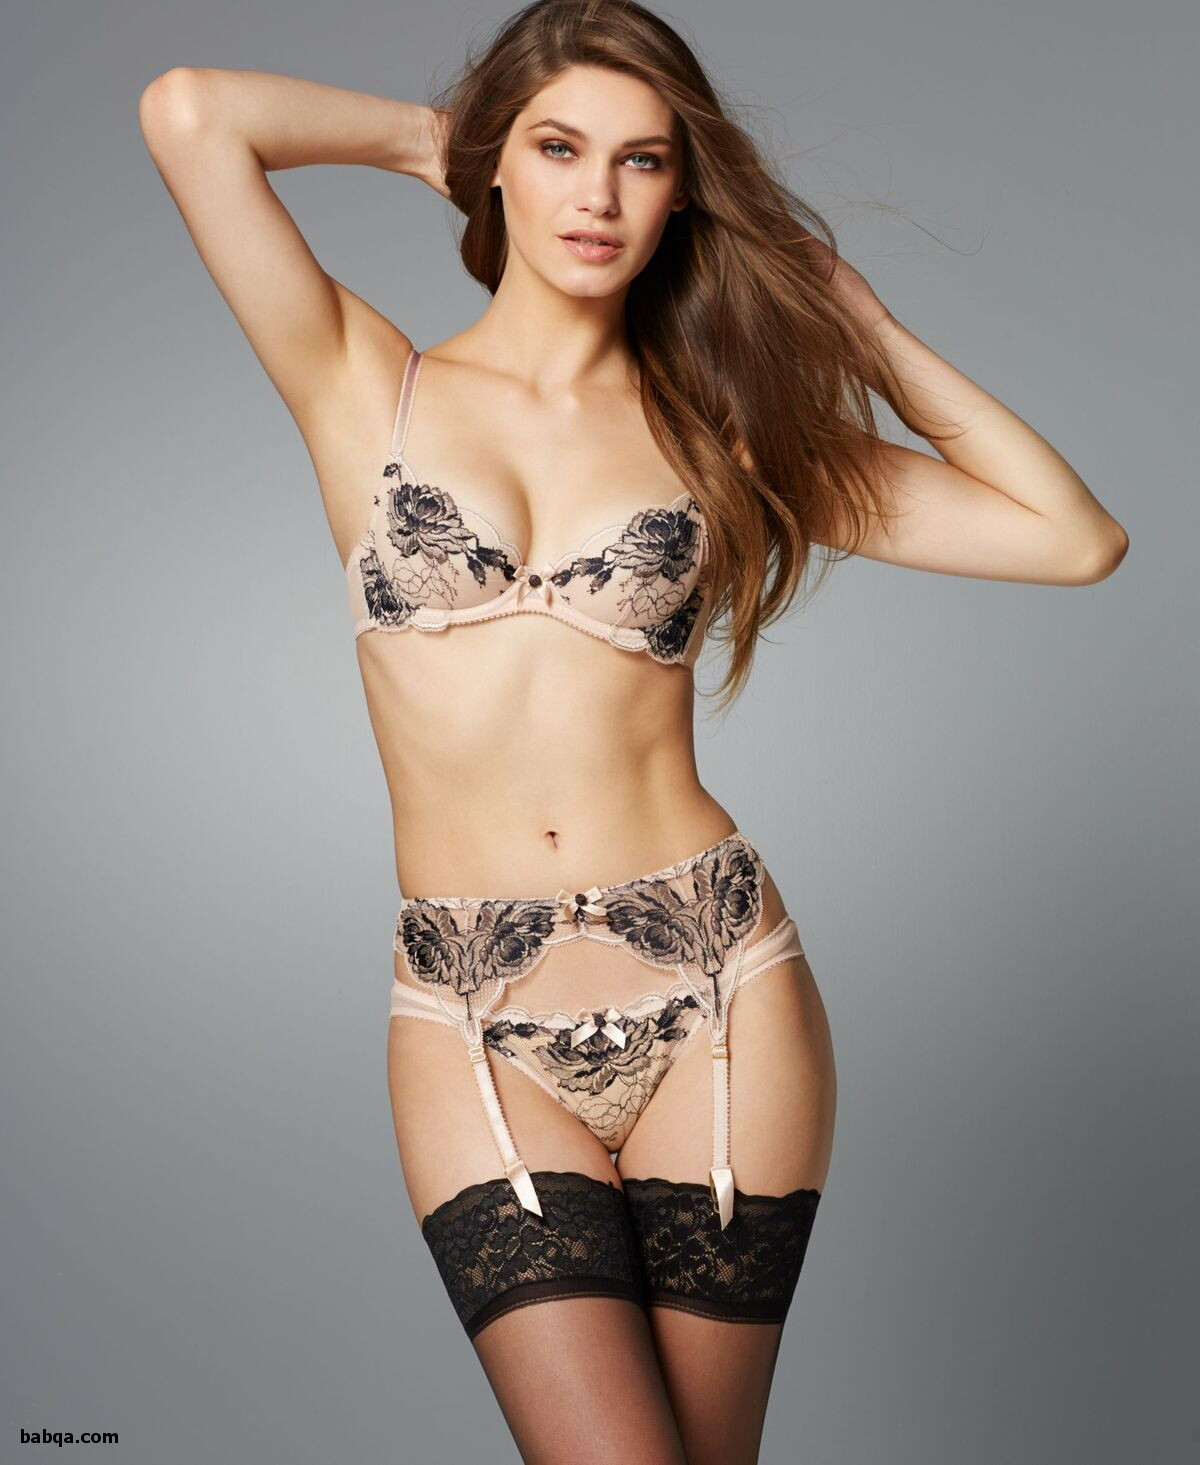 best lingerie for body shape and sexy stocking stories